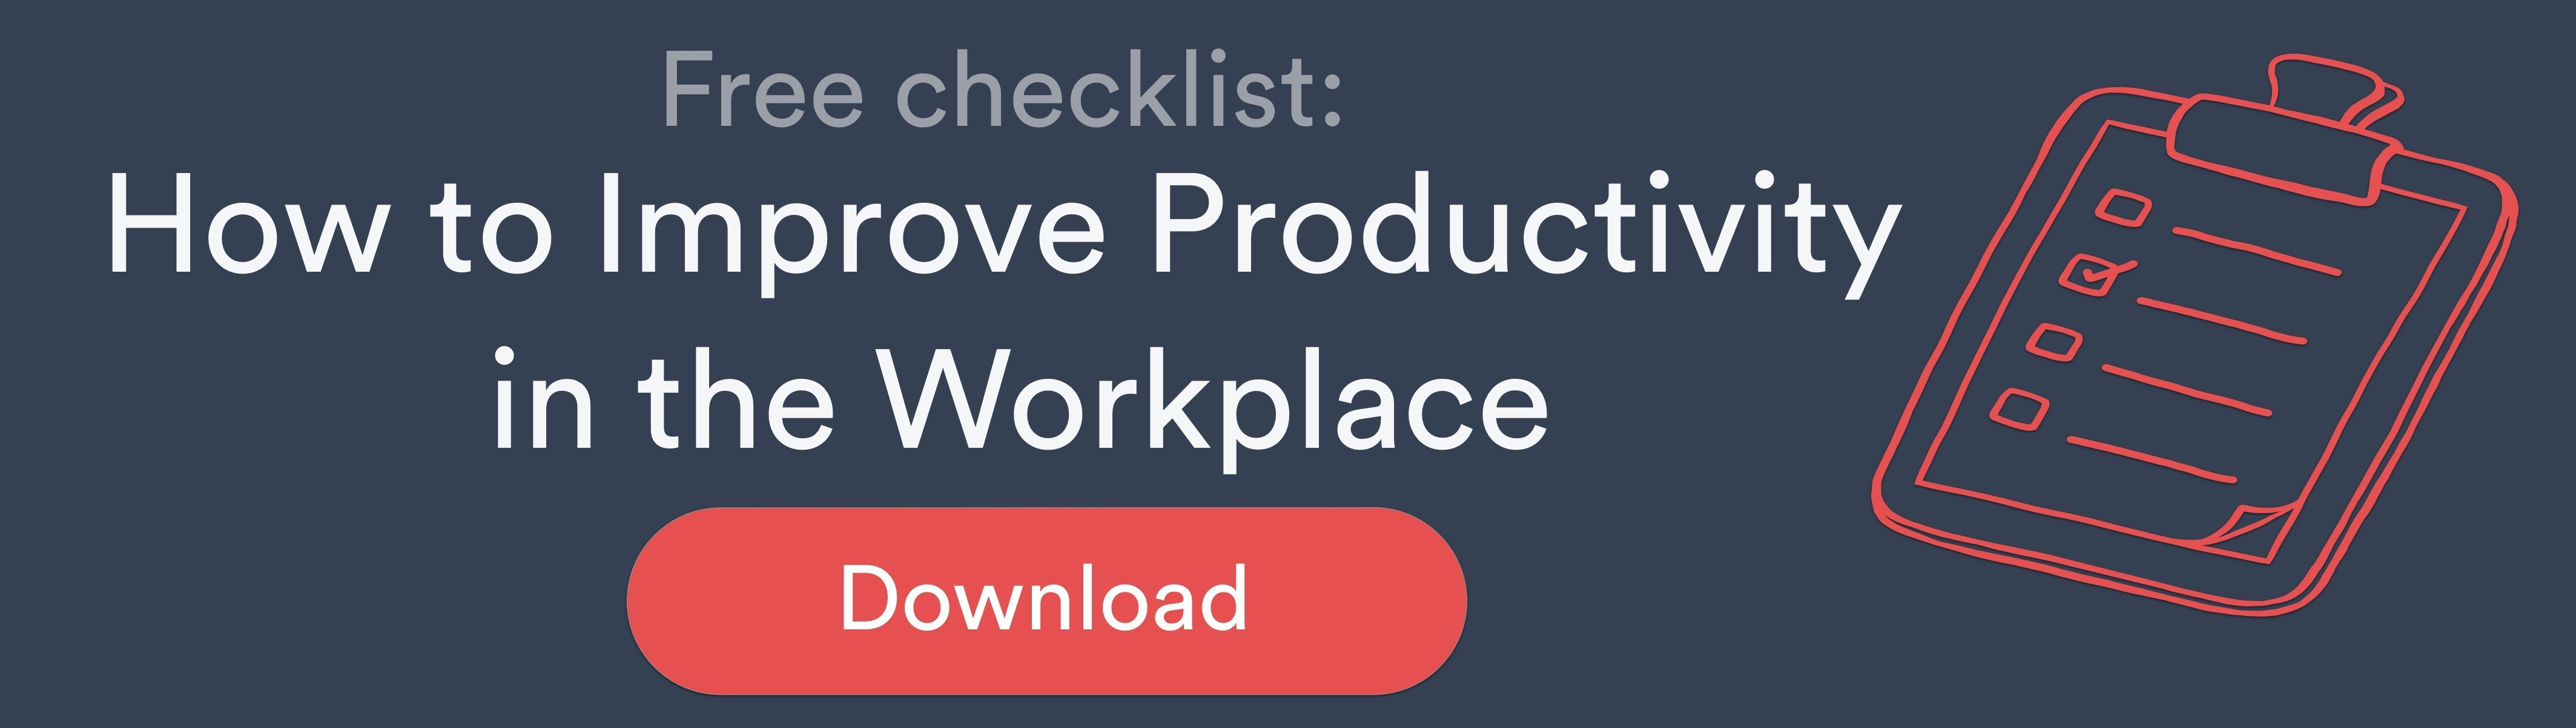 How to improve efficiency for your workplace. Checklist